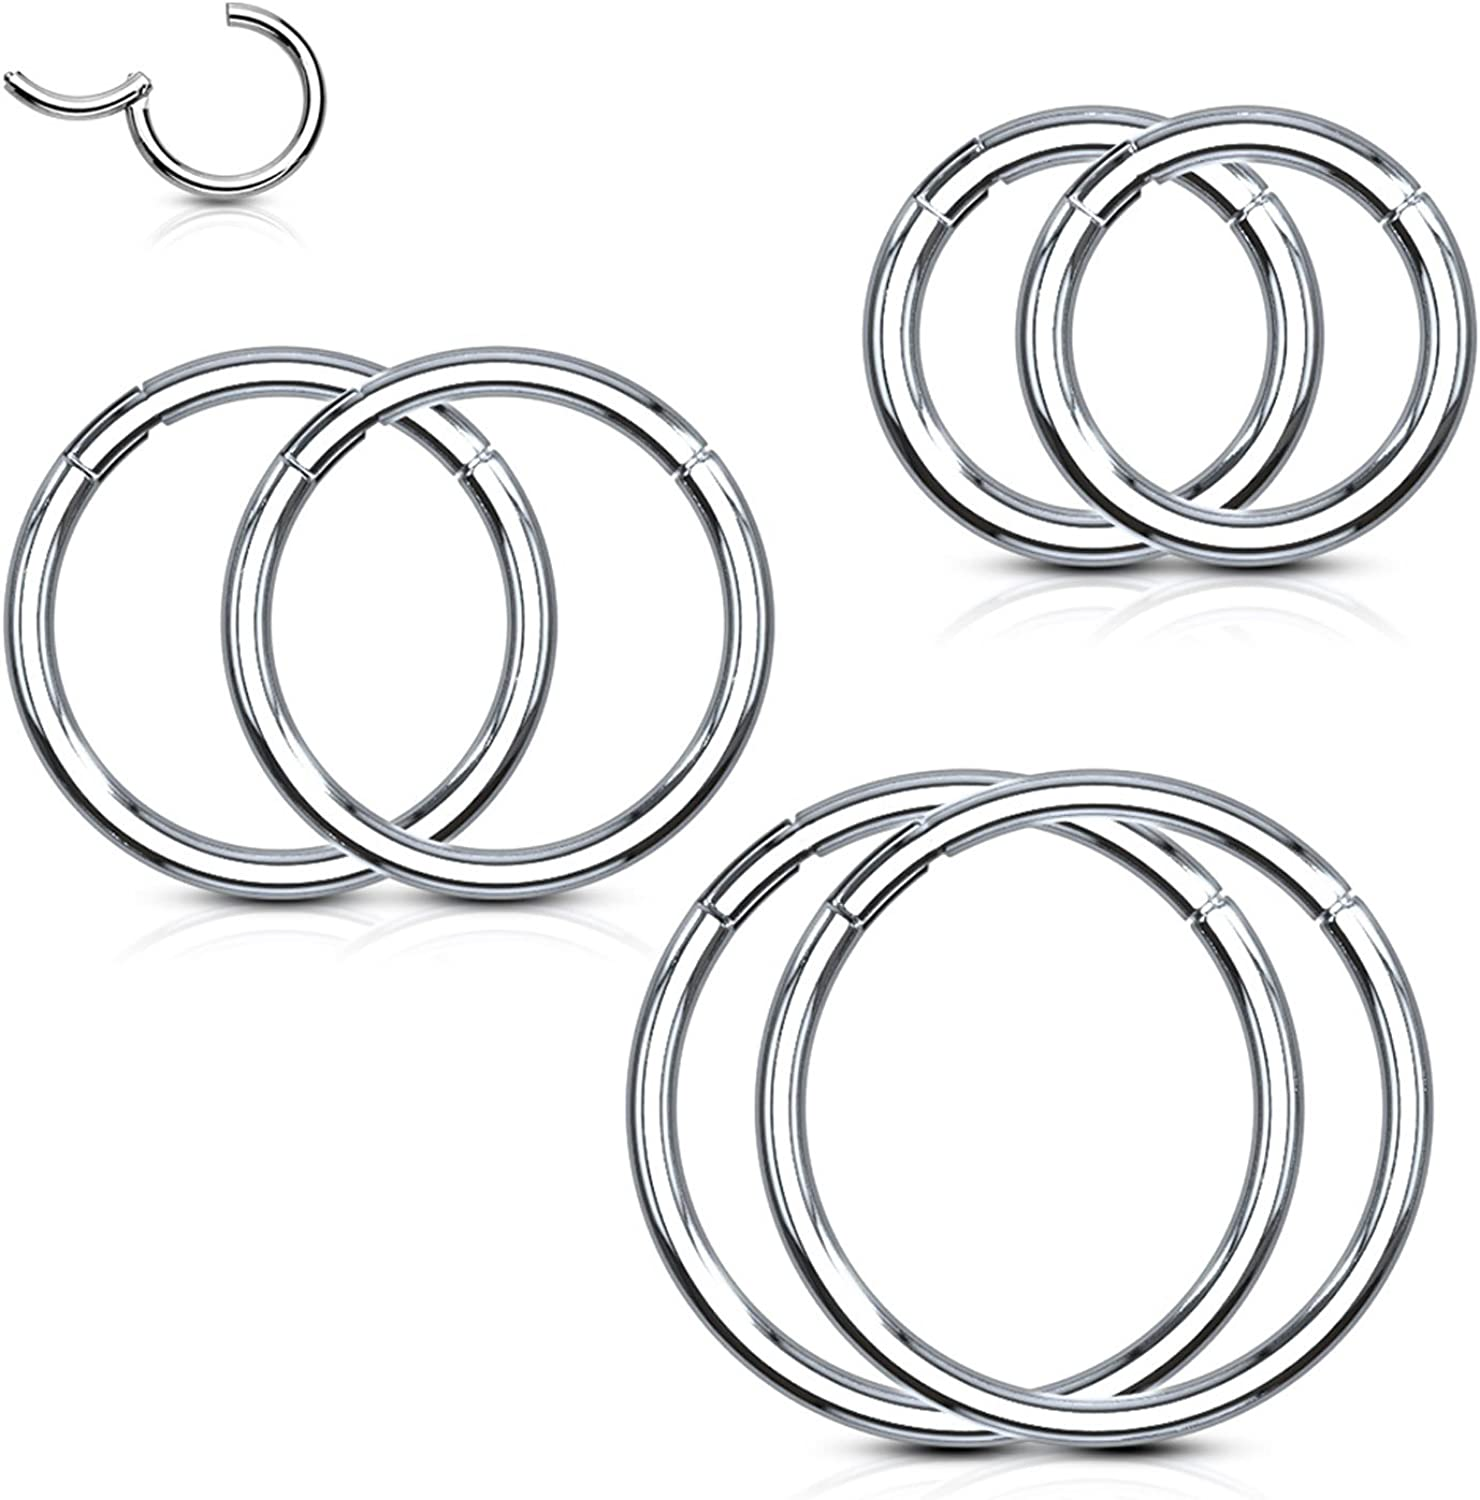 16g Removable Piece1.2mm Segment Ring Hoop - 6mmStainless Steel